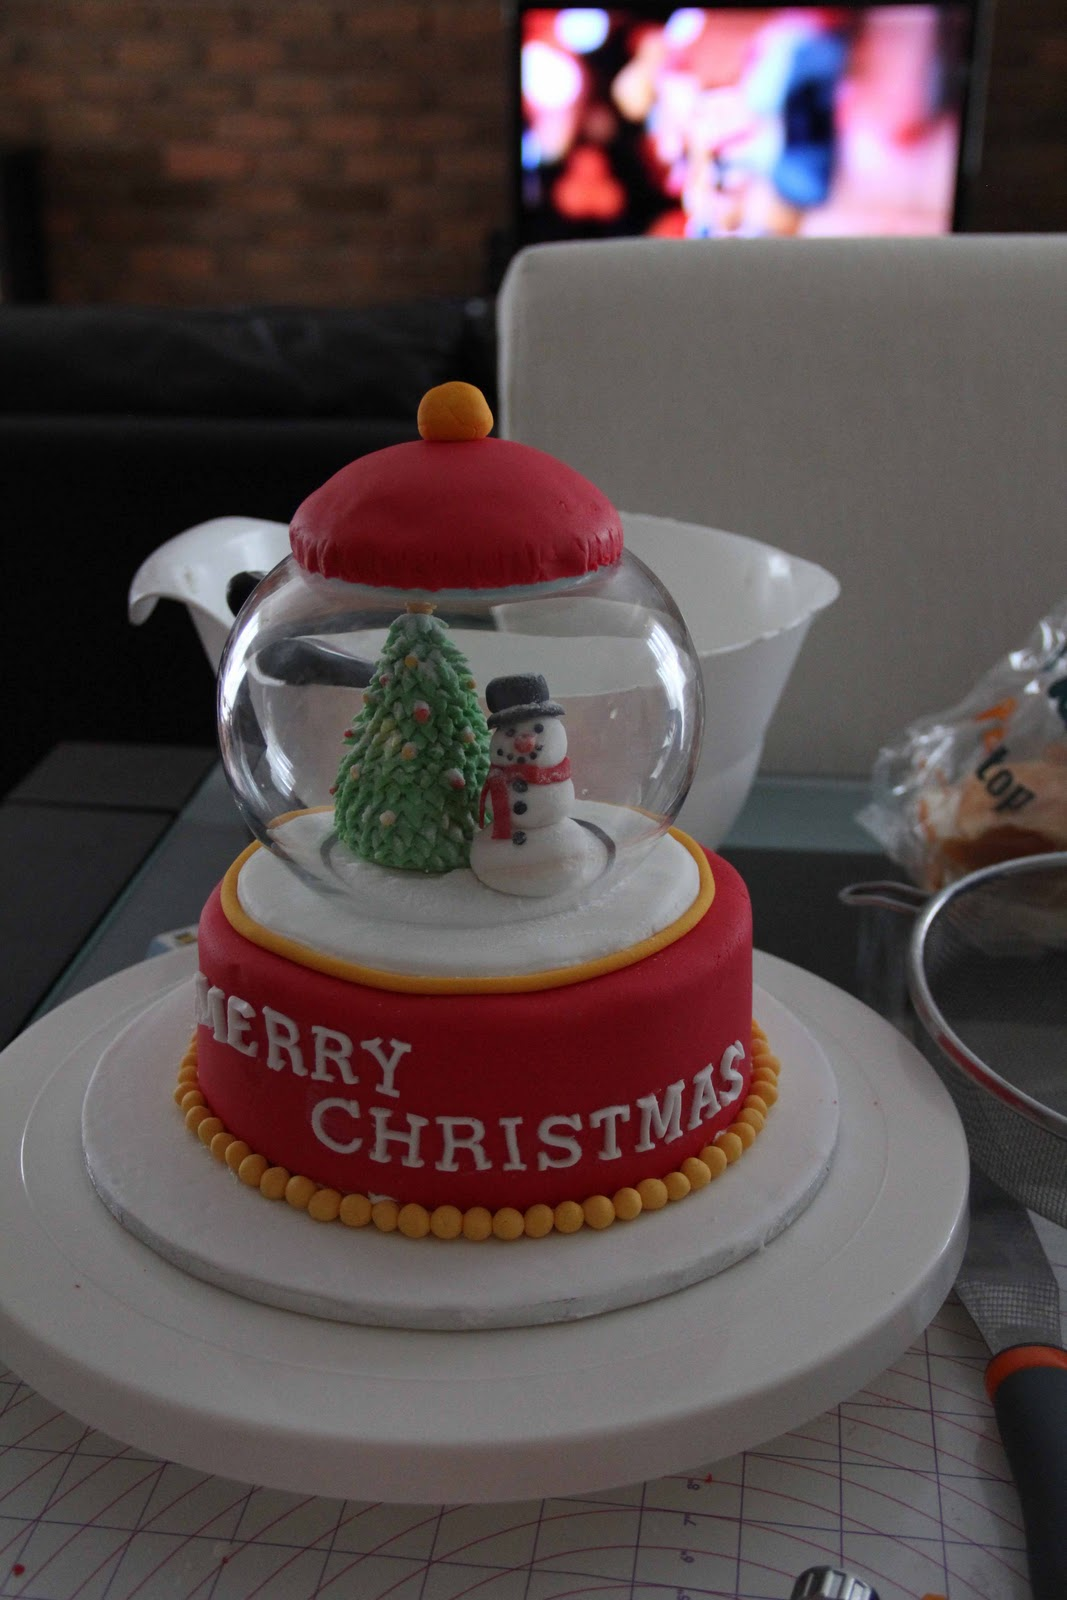 How to make christmas cake - Will Make Sure To Taste Test It Again Because I Will Need To Make Marble Cakes Soon For My Customer